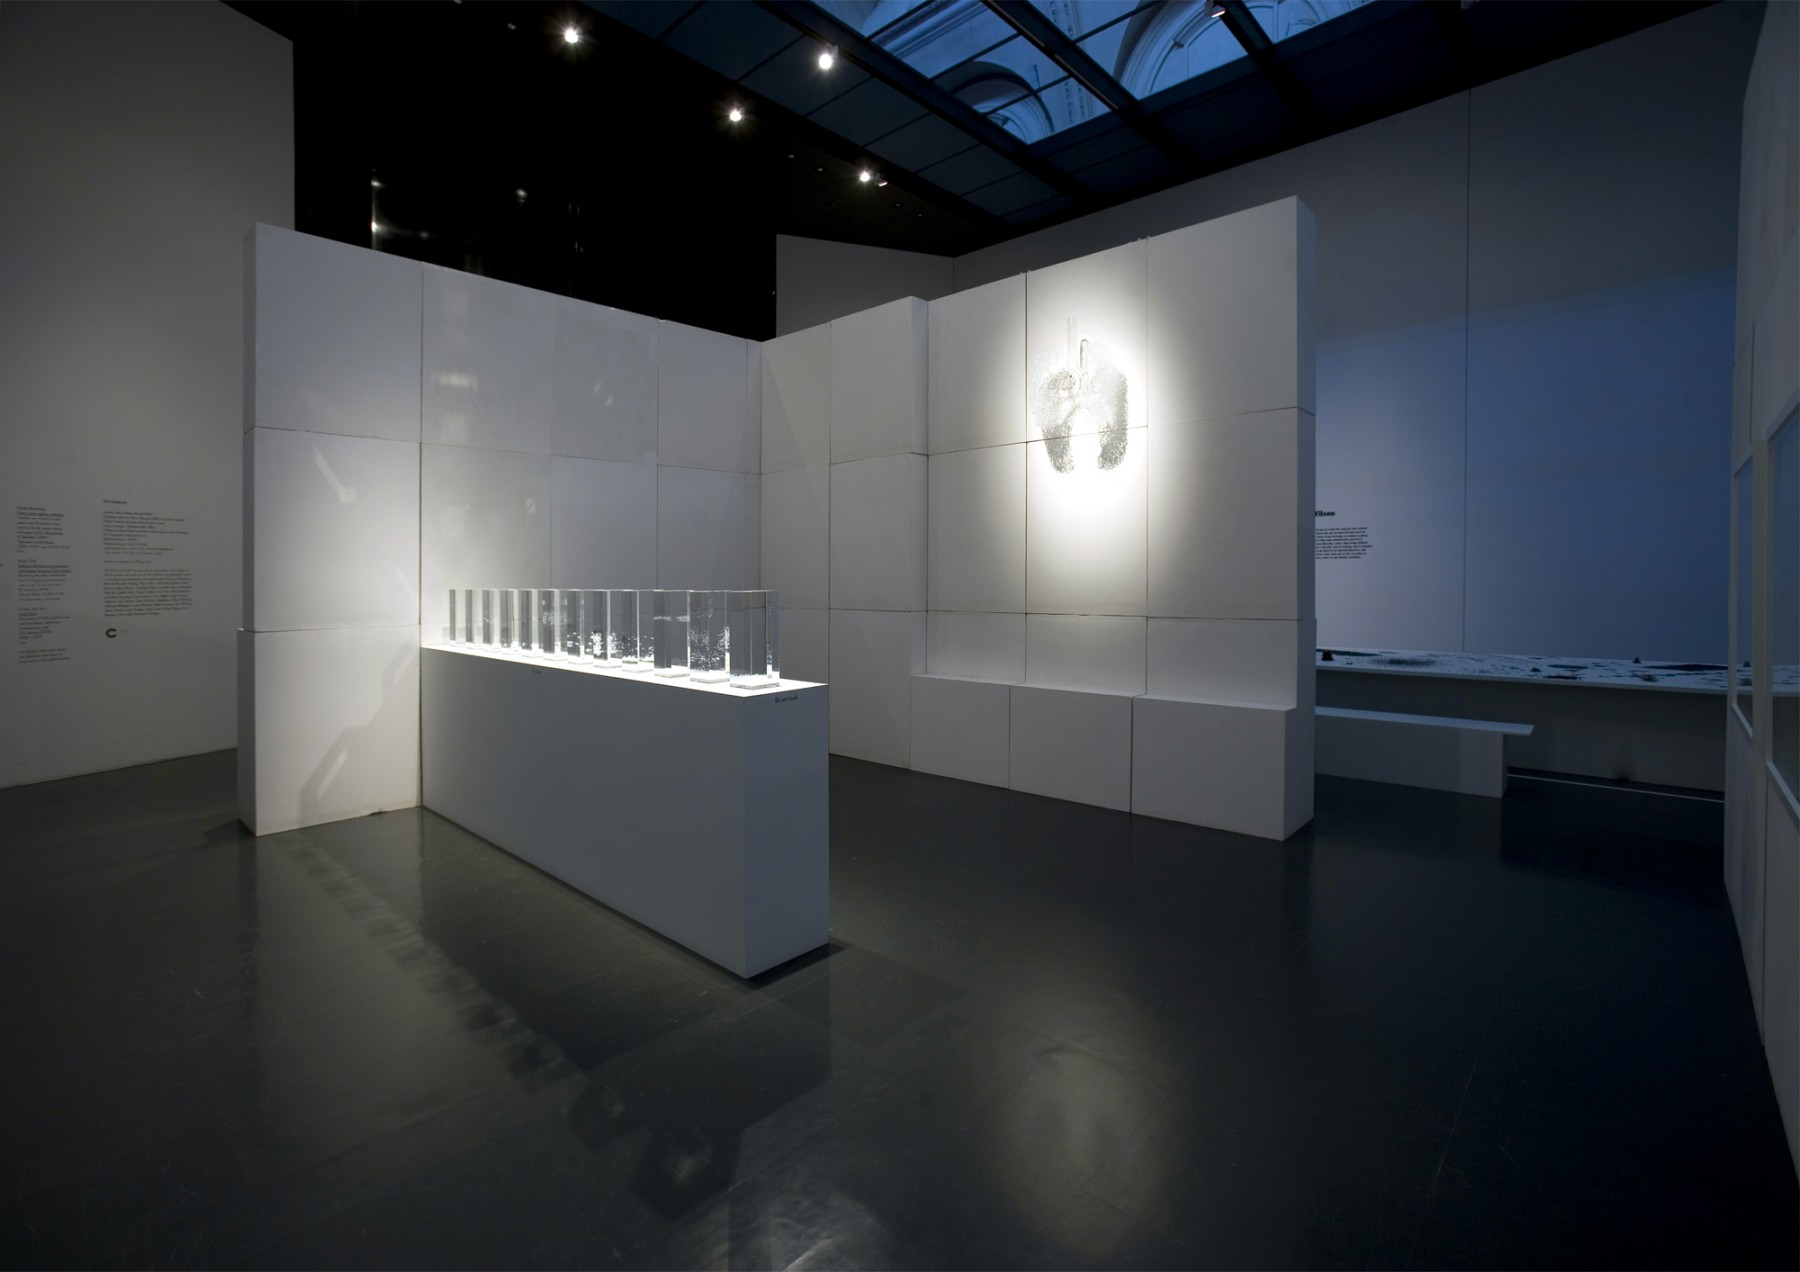 Out-Of-The-Ordinary-V&A-London-design-exhibition-craft-materials-Laurie-Britton-Newell-craft-council-Jamie-Fobert-Architects-3